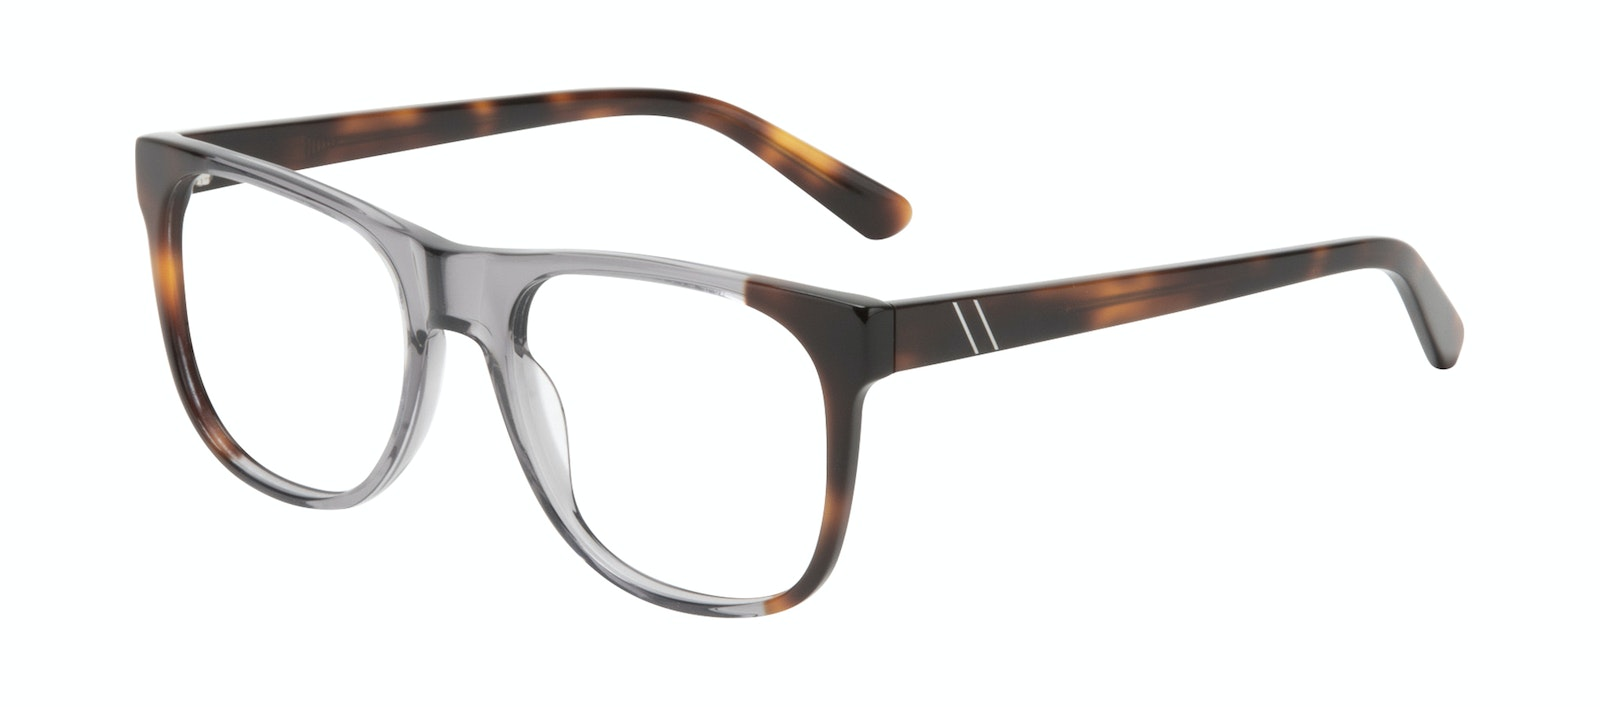 Affordable Fashion Glasses Square Eyeglasses Men Make Smokey Tort Tilt